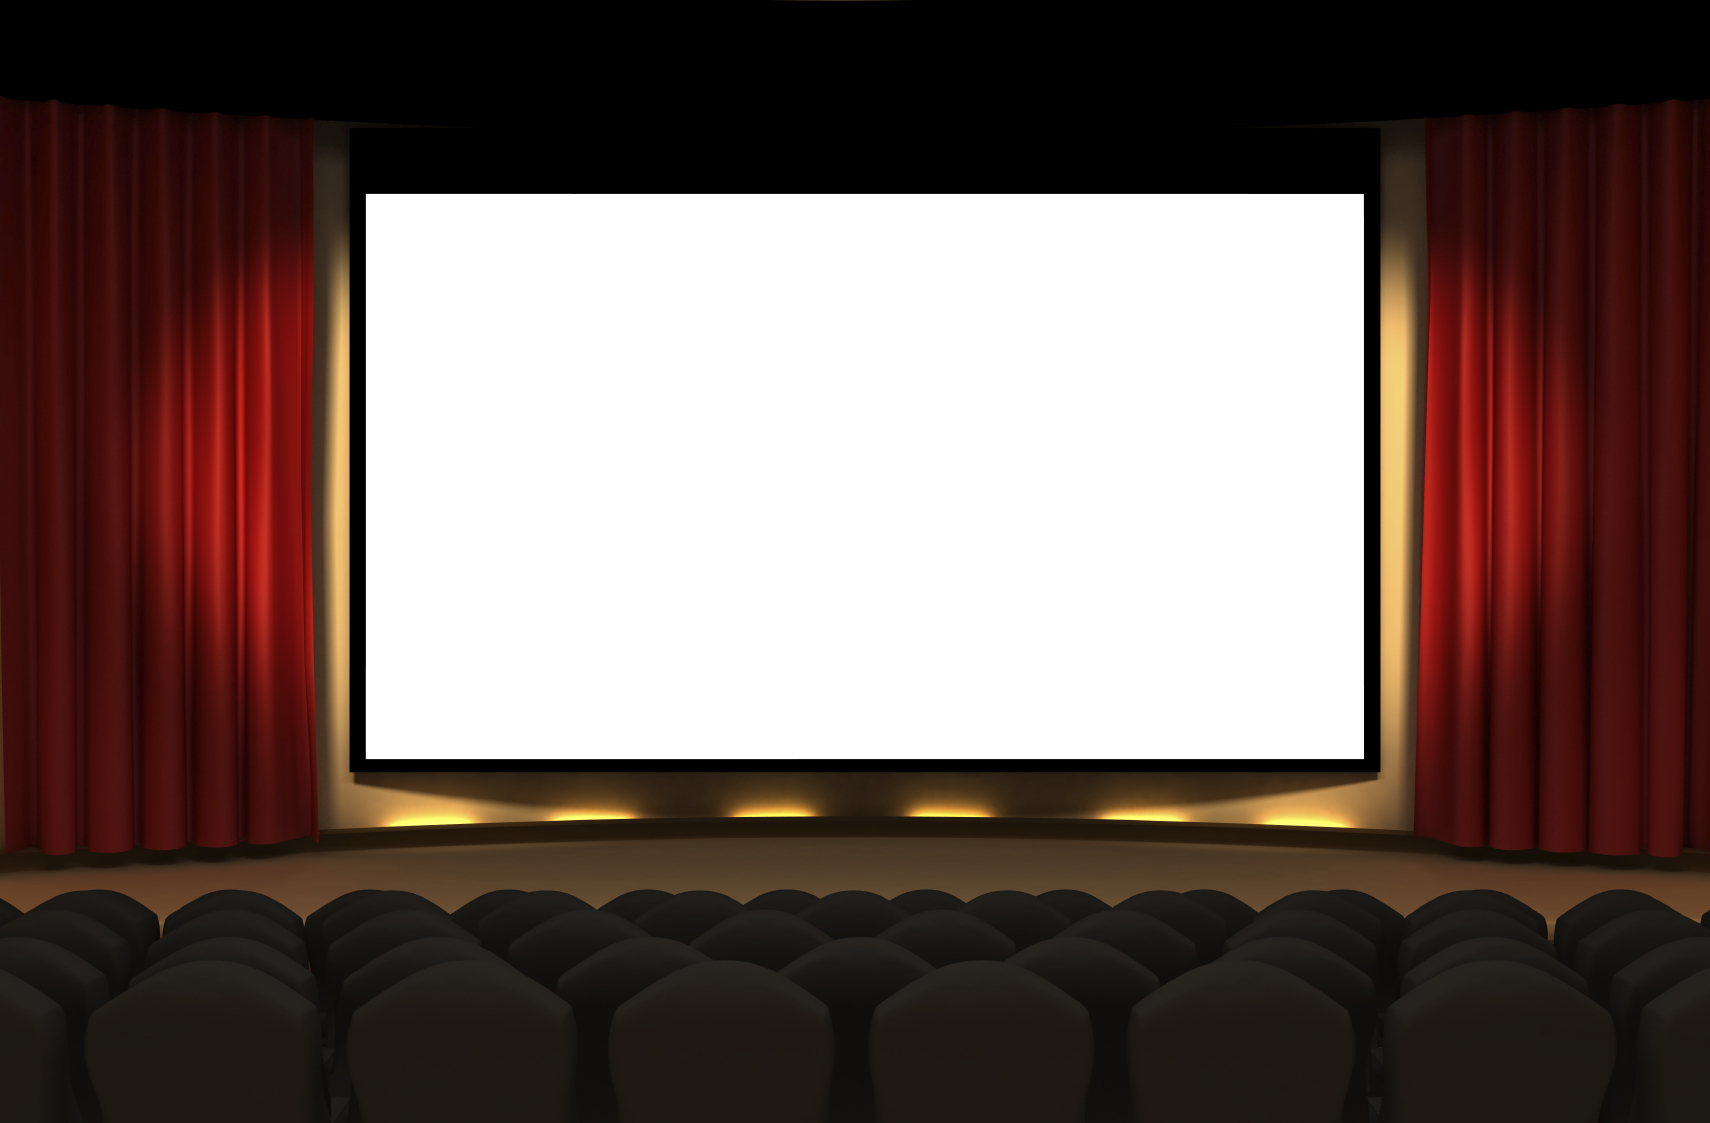 screen movie movies stage theatre hitting better than why wallpapersafari code